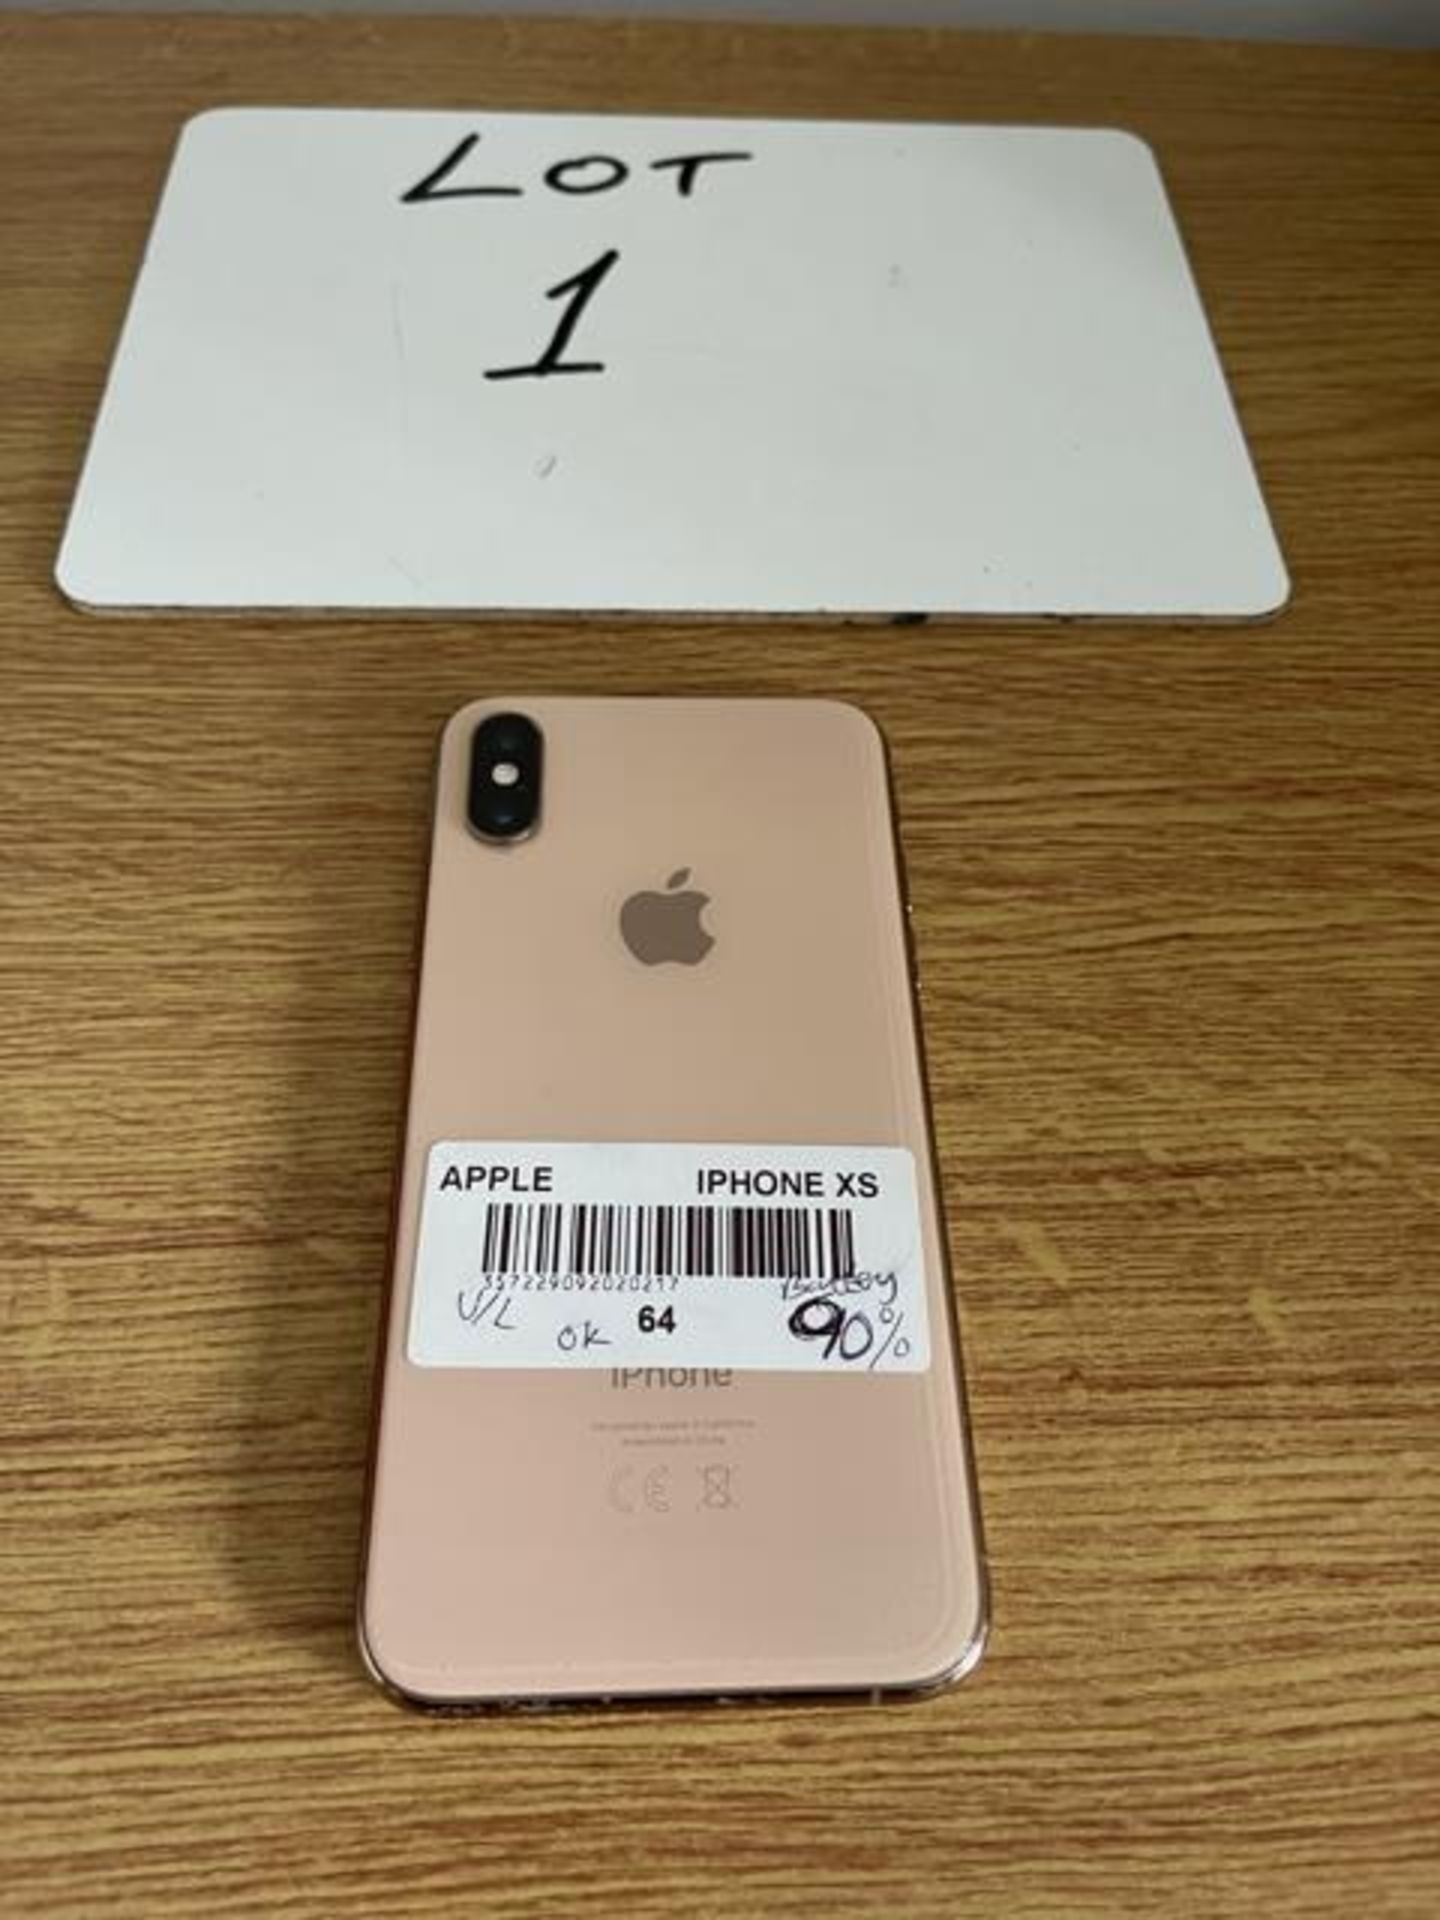 Apple iPhone XS 64gb. 90% battery health or better - Image 2 of 2